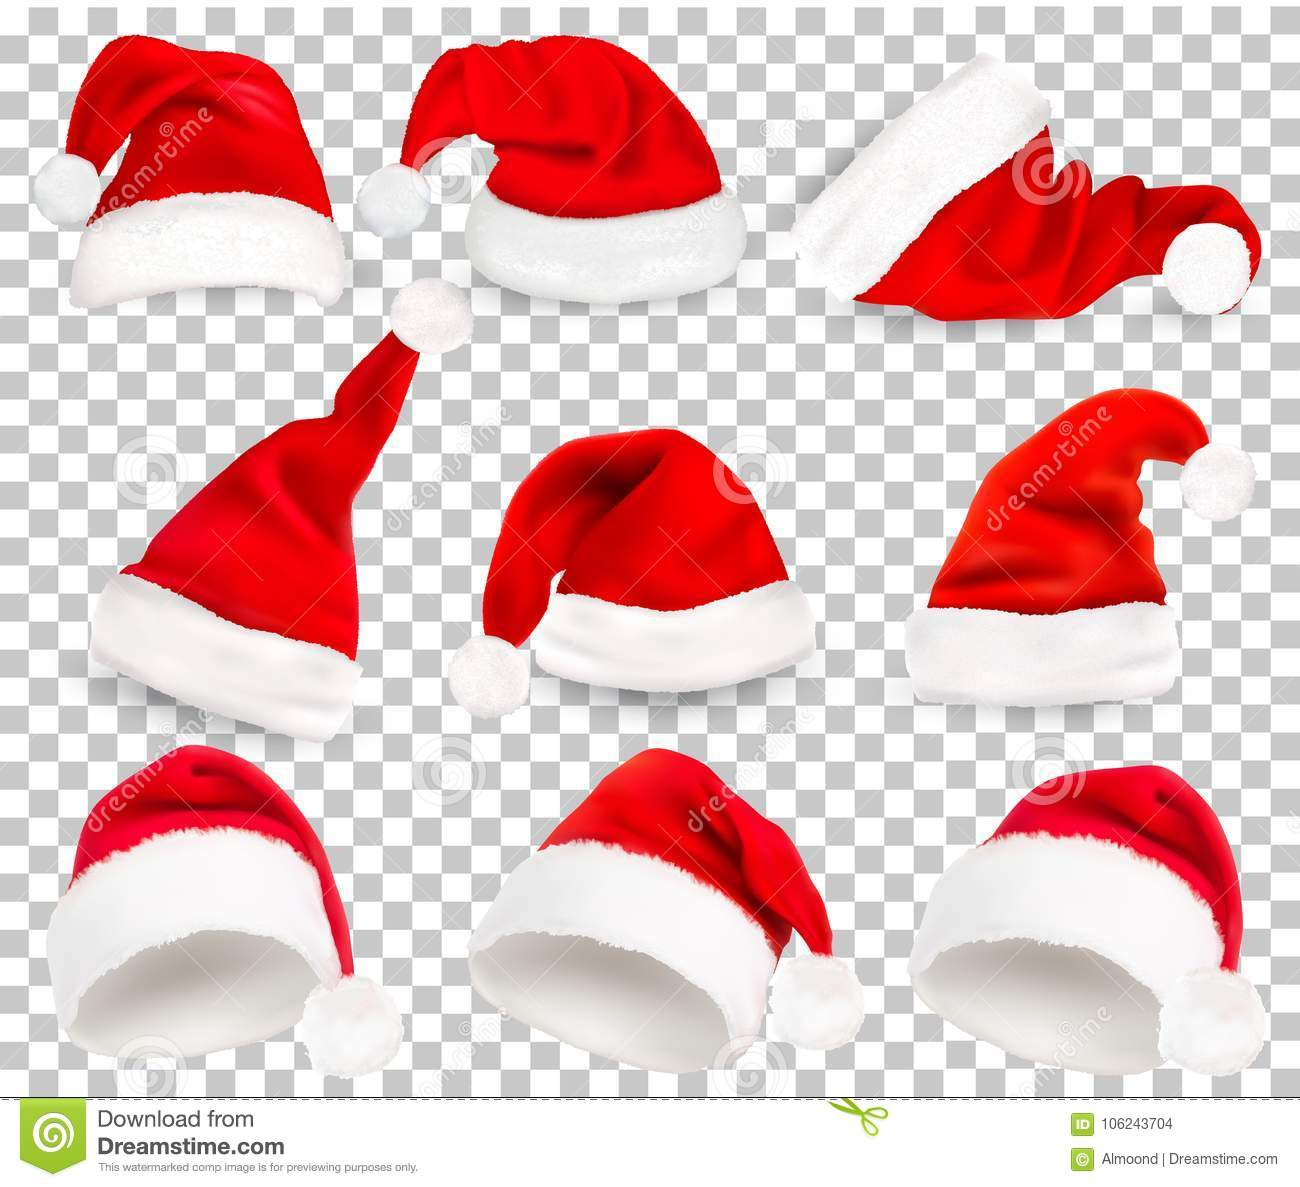 Christmas Hat Transparent.Collection Of Red Santa Hats On Transparent Background